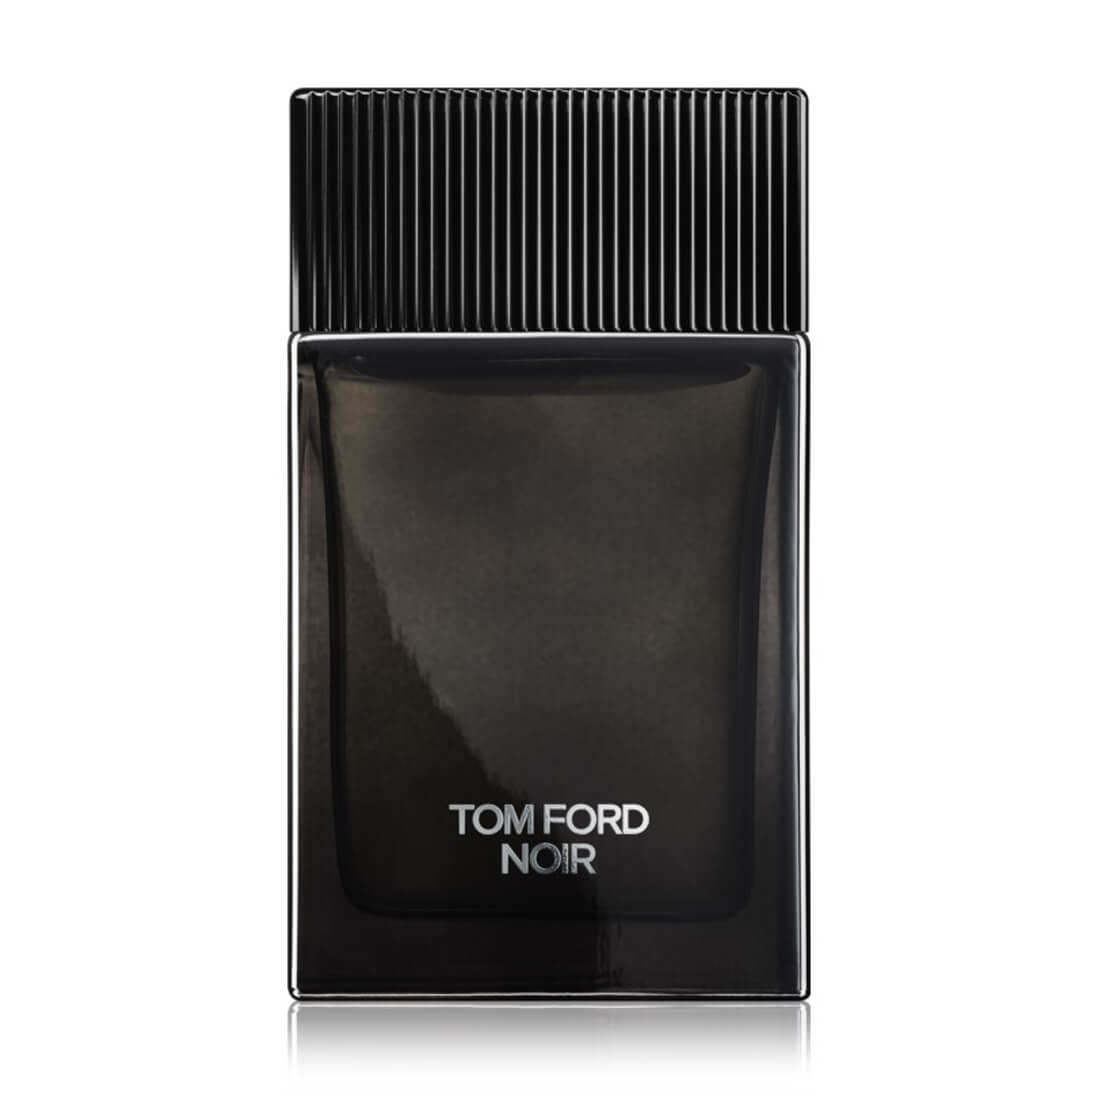 Tom Ford Noir Eau De Perfume For Men 100ml